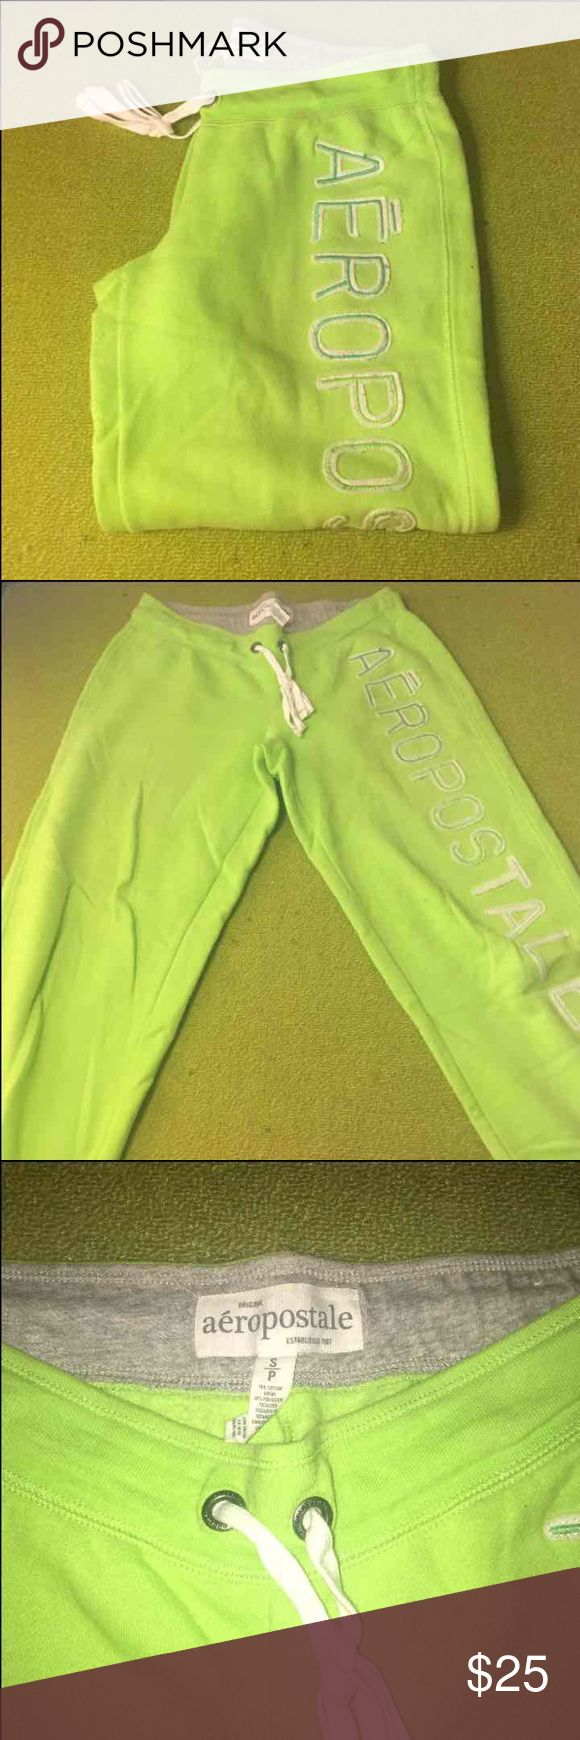 Aeropostale Lime Green Pants Hardly worn very bright line green pants, very comfty & just sitting in my closet ready for a new owner! They are a size S but are a bit larger than size it would fit more of a Medium too maybe even a large! Aeropostale Pants Track Pants & Joggers